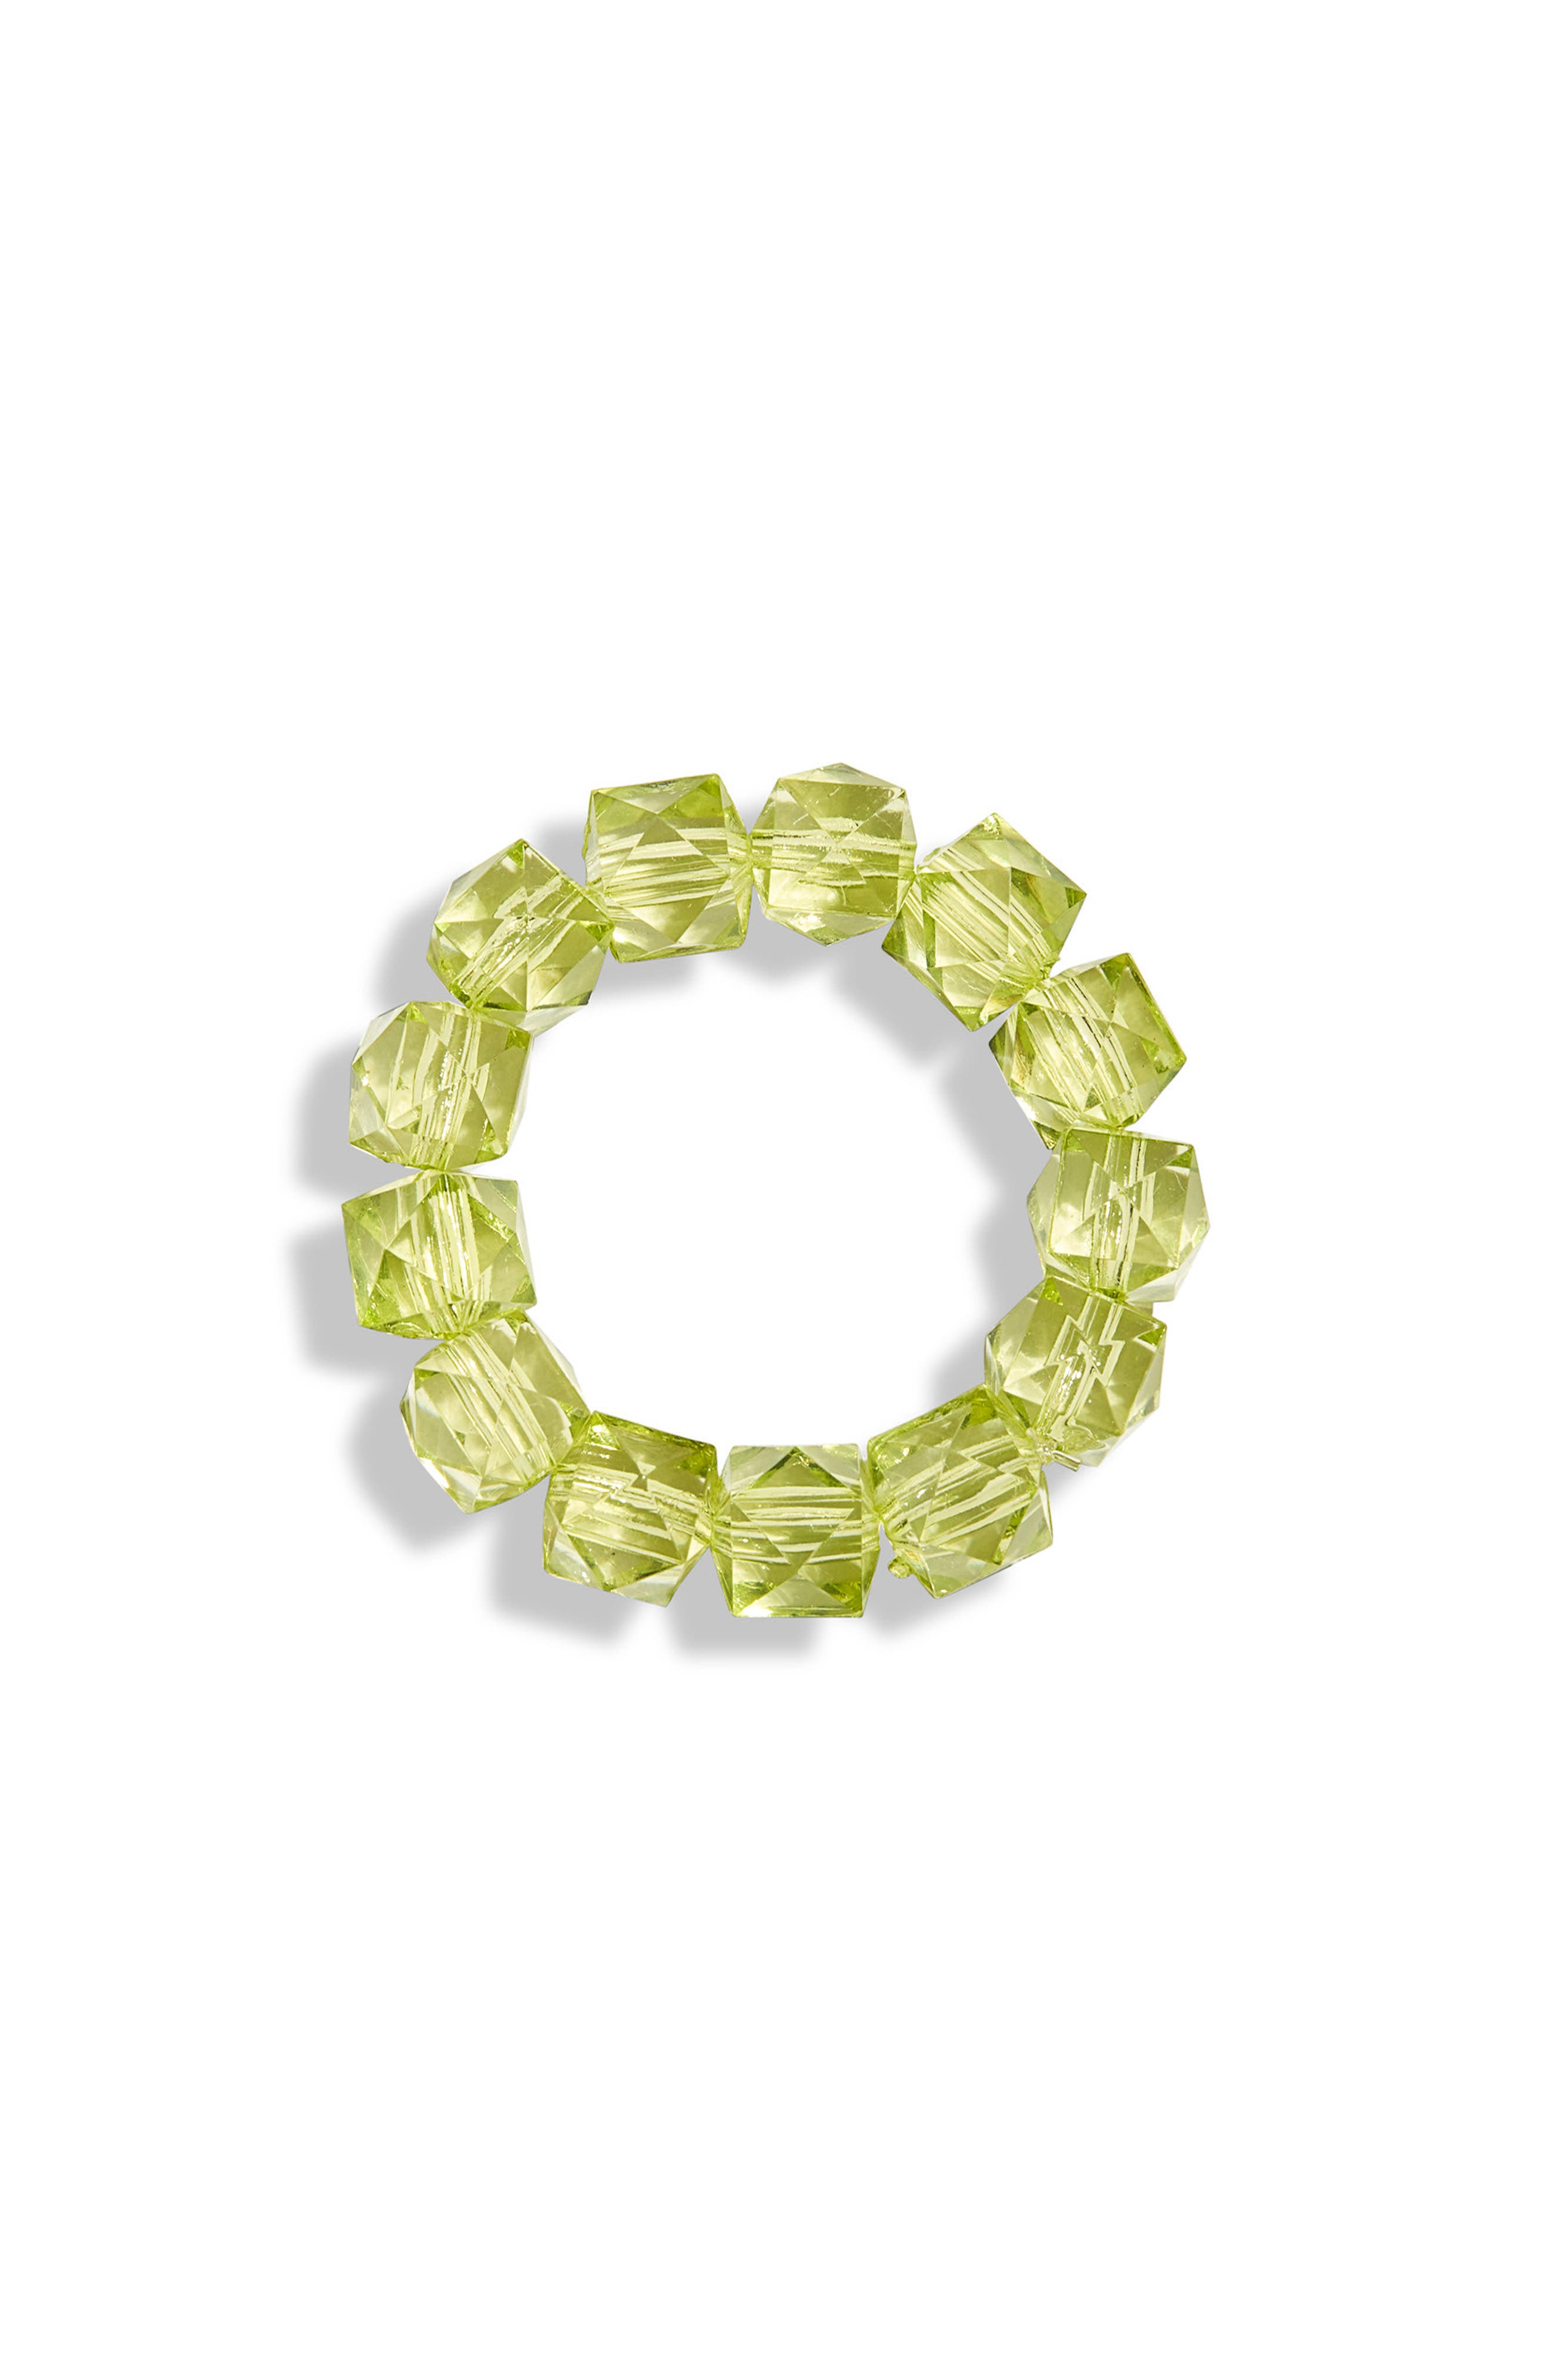 Jewels Solid Rock Candy Bracelet,                             Main thumbnail 1, color,                             GREEN